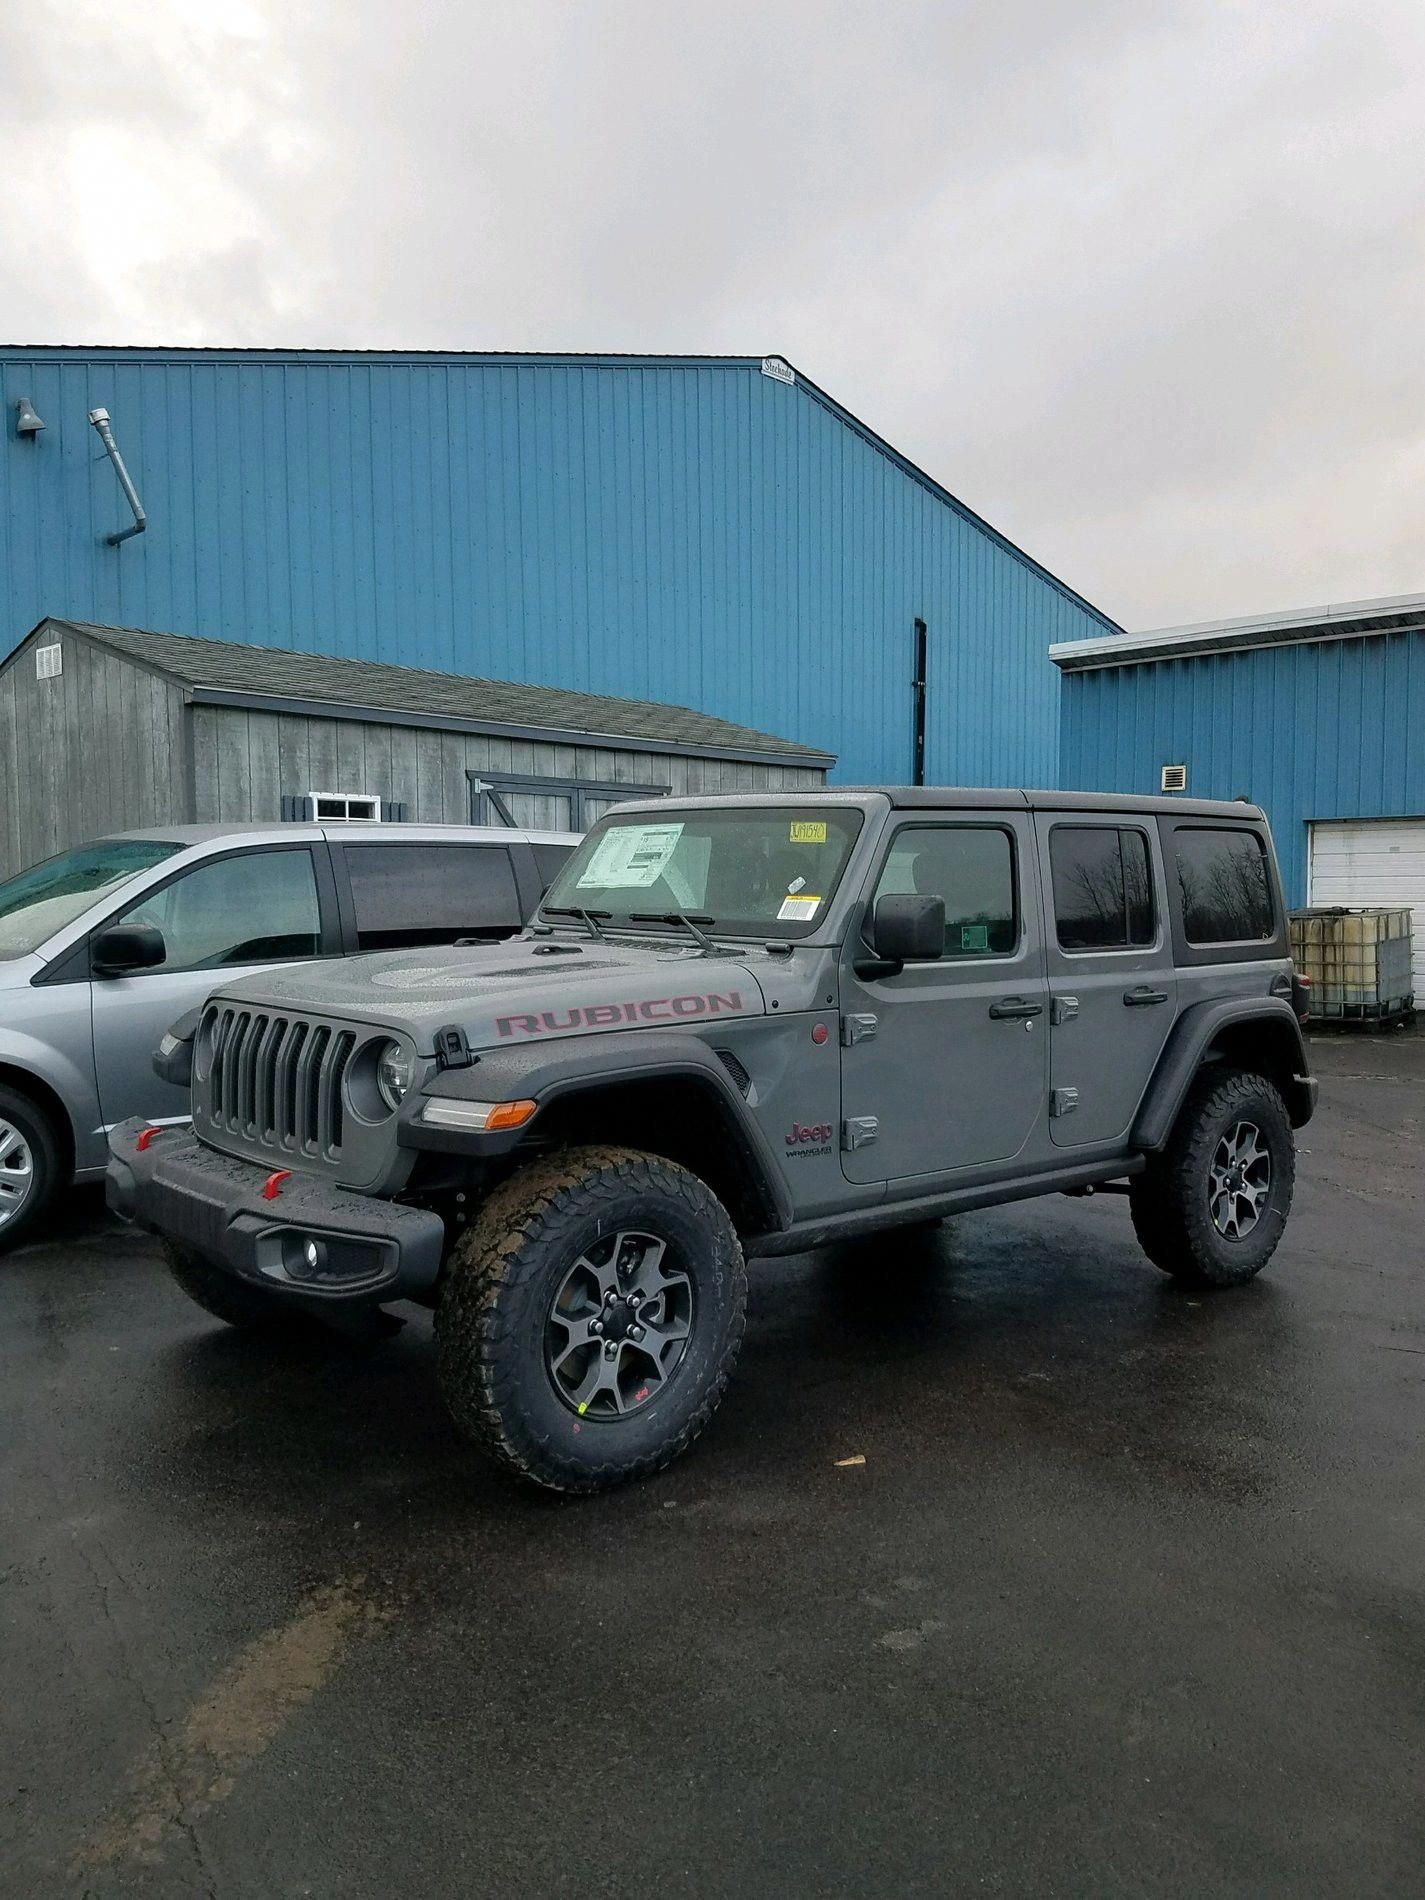 Jeep Jl Sting Grey Vwcountrybuggywallpaper Jeep Rubicon Off Road Jeep Jeep